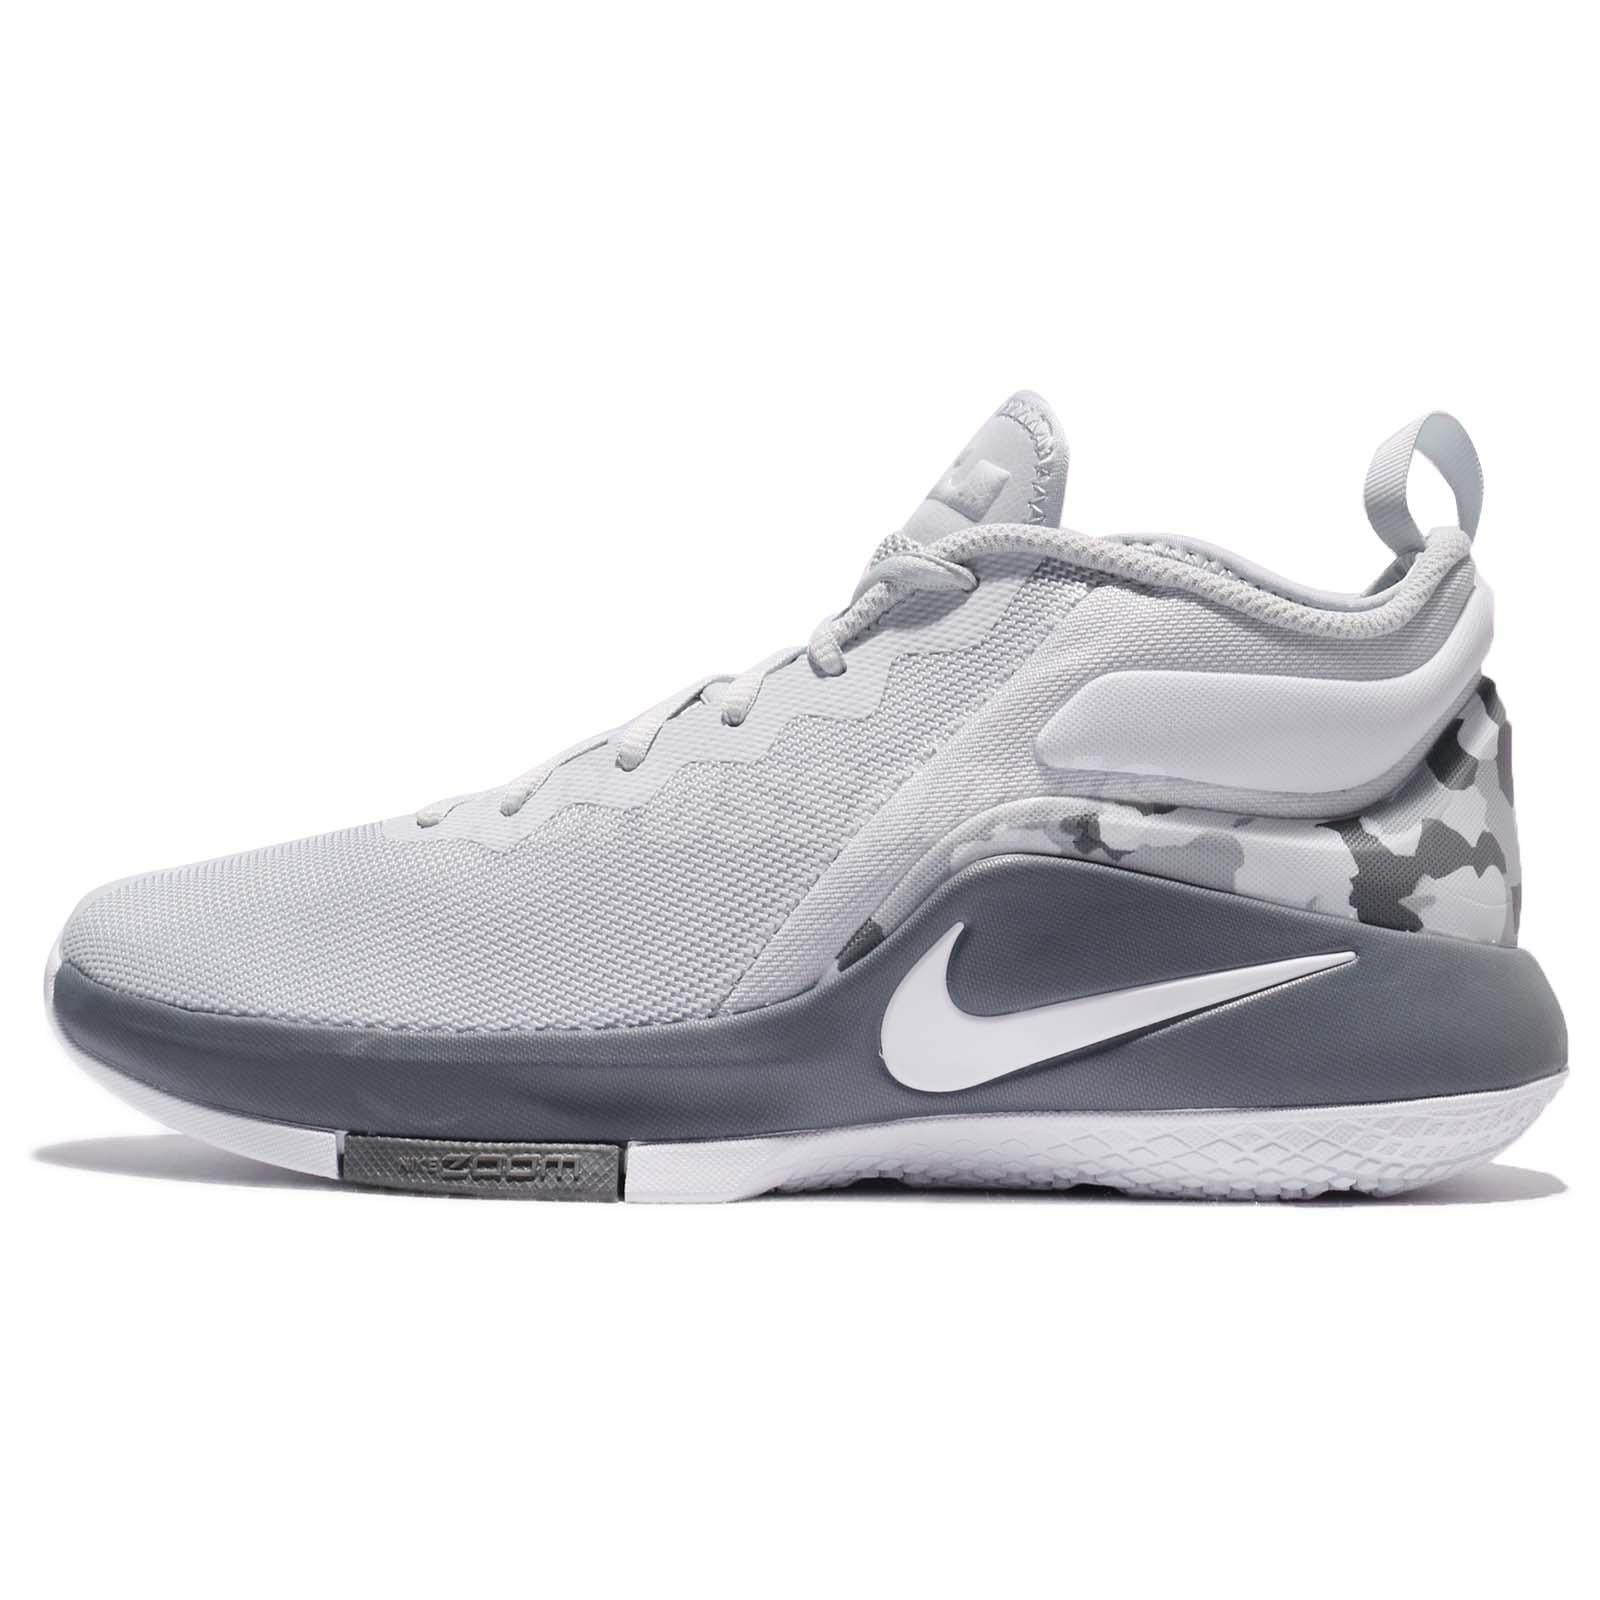 356c477c2add6 ... spain nike lebron witness ii ep 2 james grey white camo men basketball  shoe aa3820 002